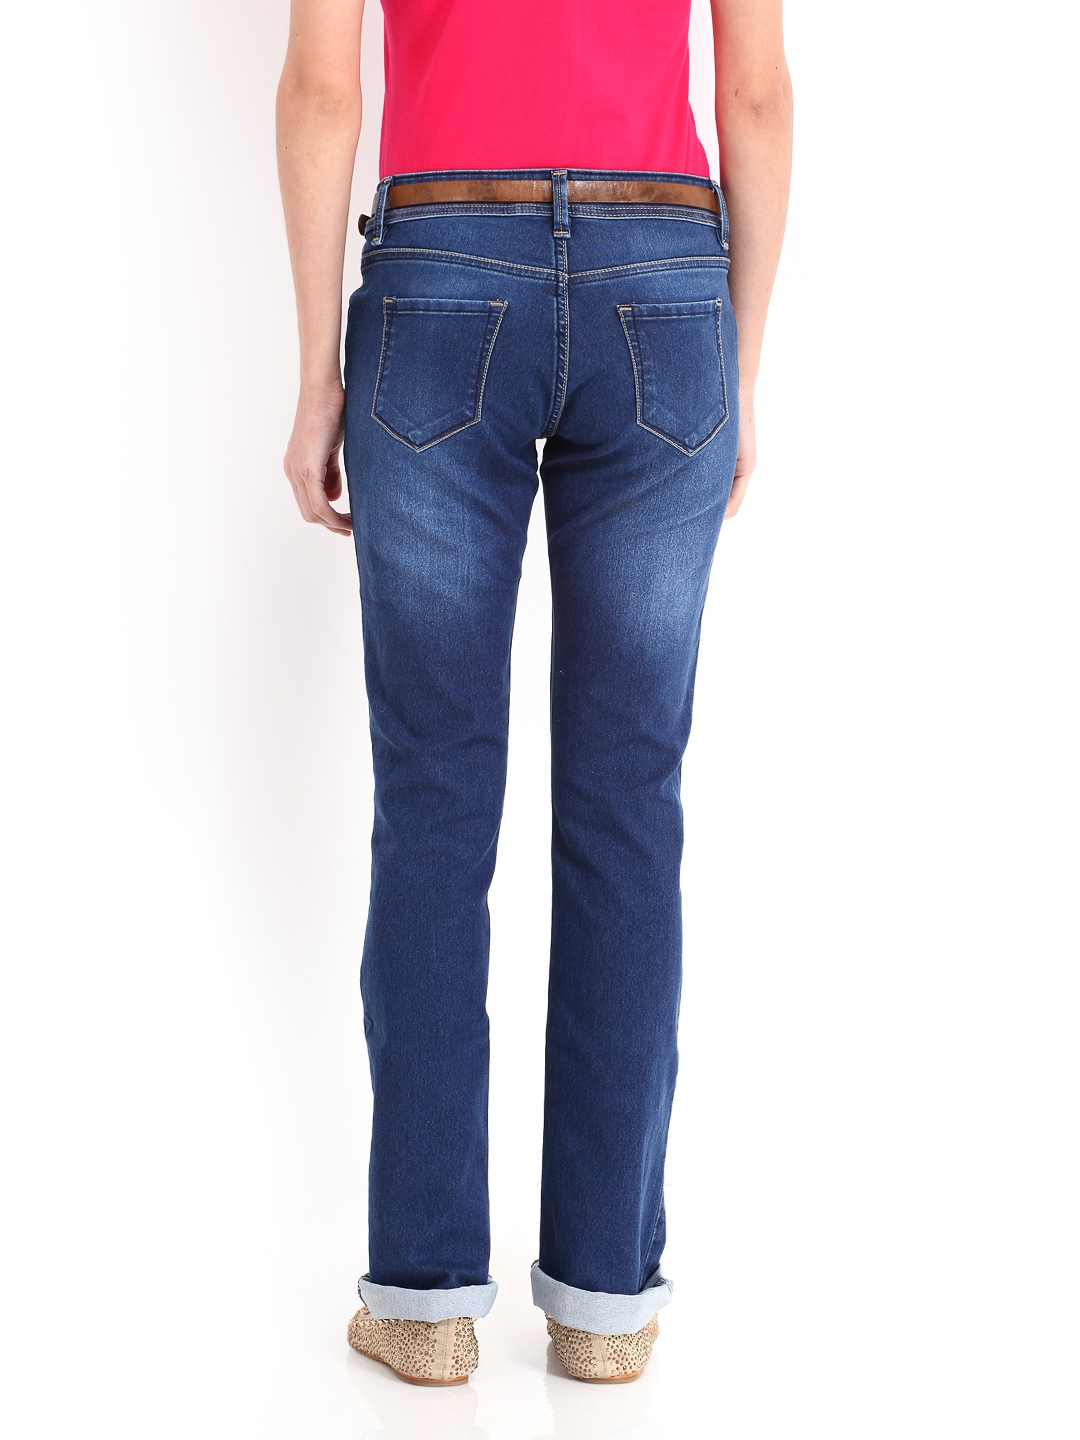 Levi's Jeans- Buy Levi's Women Jeans online in India. Finest collection of Levi's Jeans that too at upto 70% off only at urgut.ga All India FREE Shipping. Cash on Delivery available.